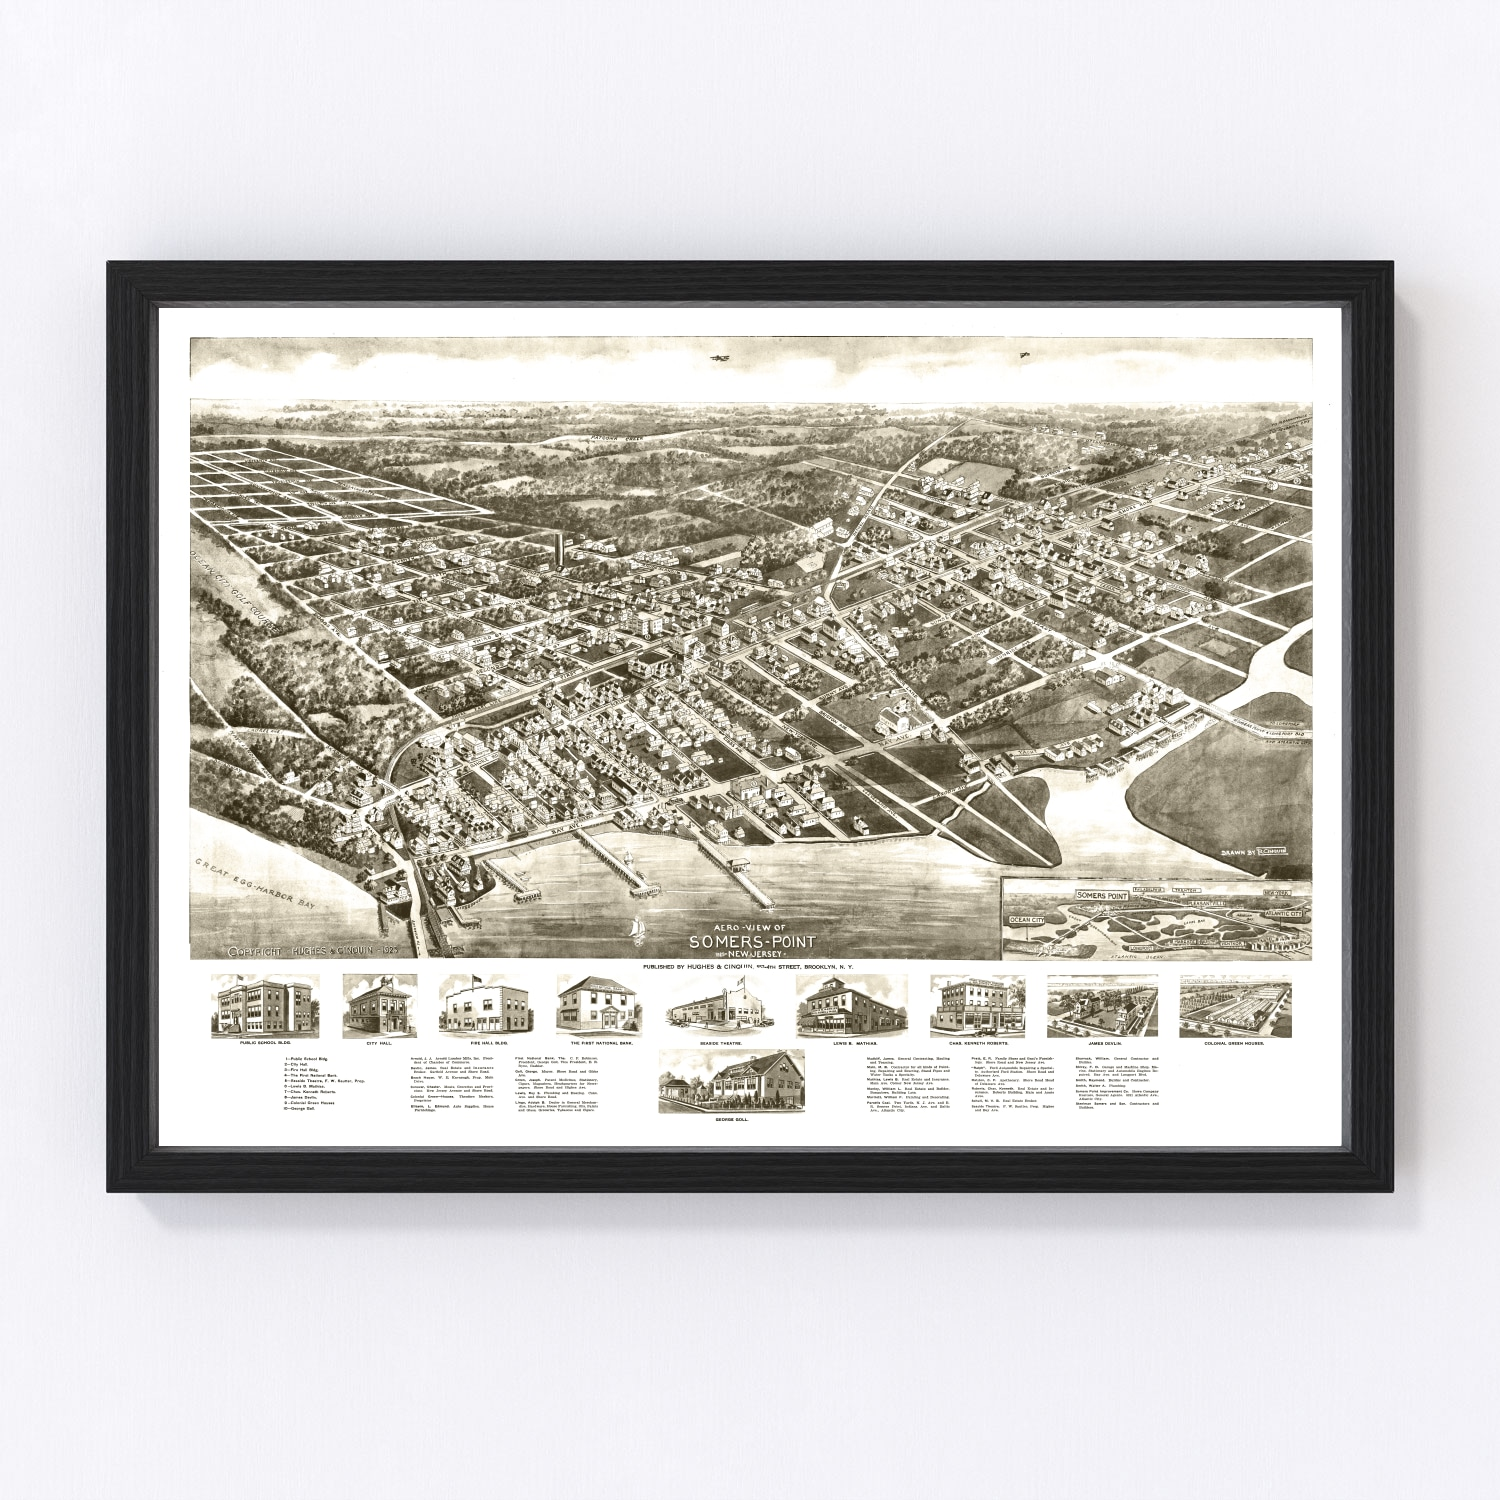 Vintage Map of Somers Point, New Jersey 1925